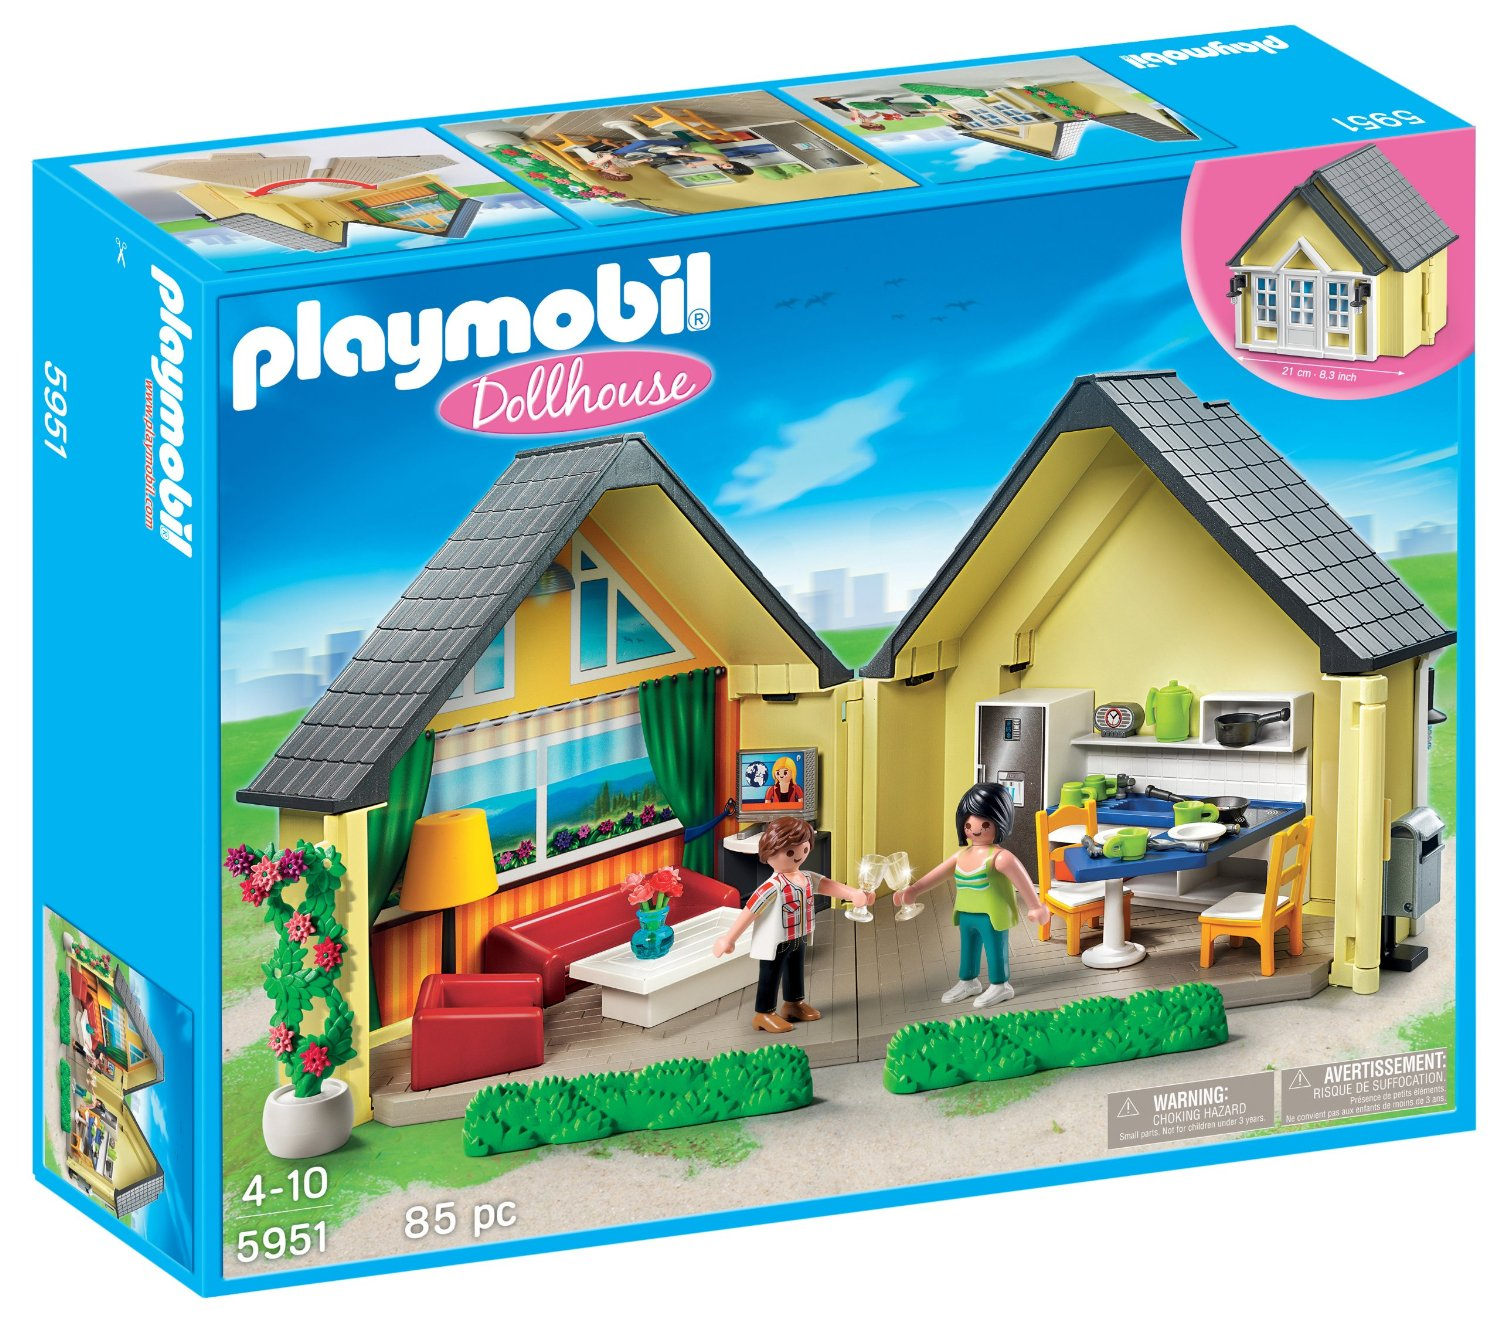 Brickstoy New Playmobil Item Lanuched Playmobil Dollhouse 5951